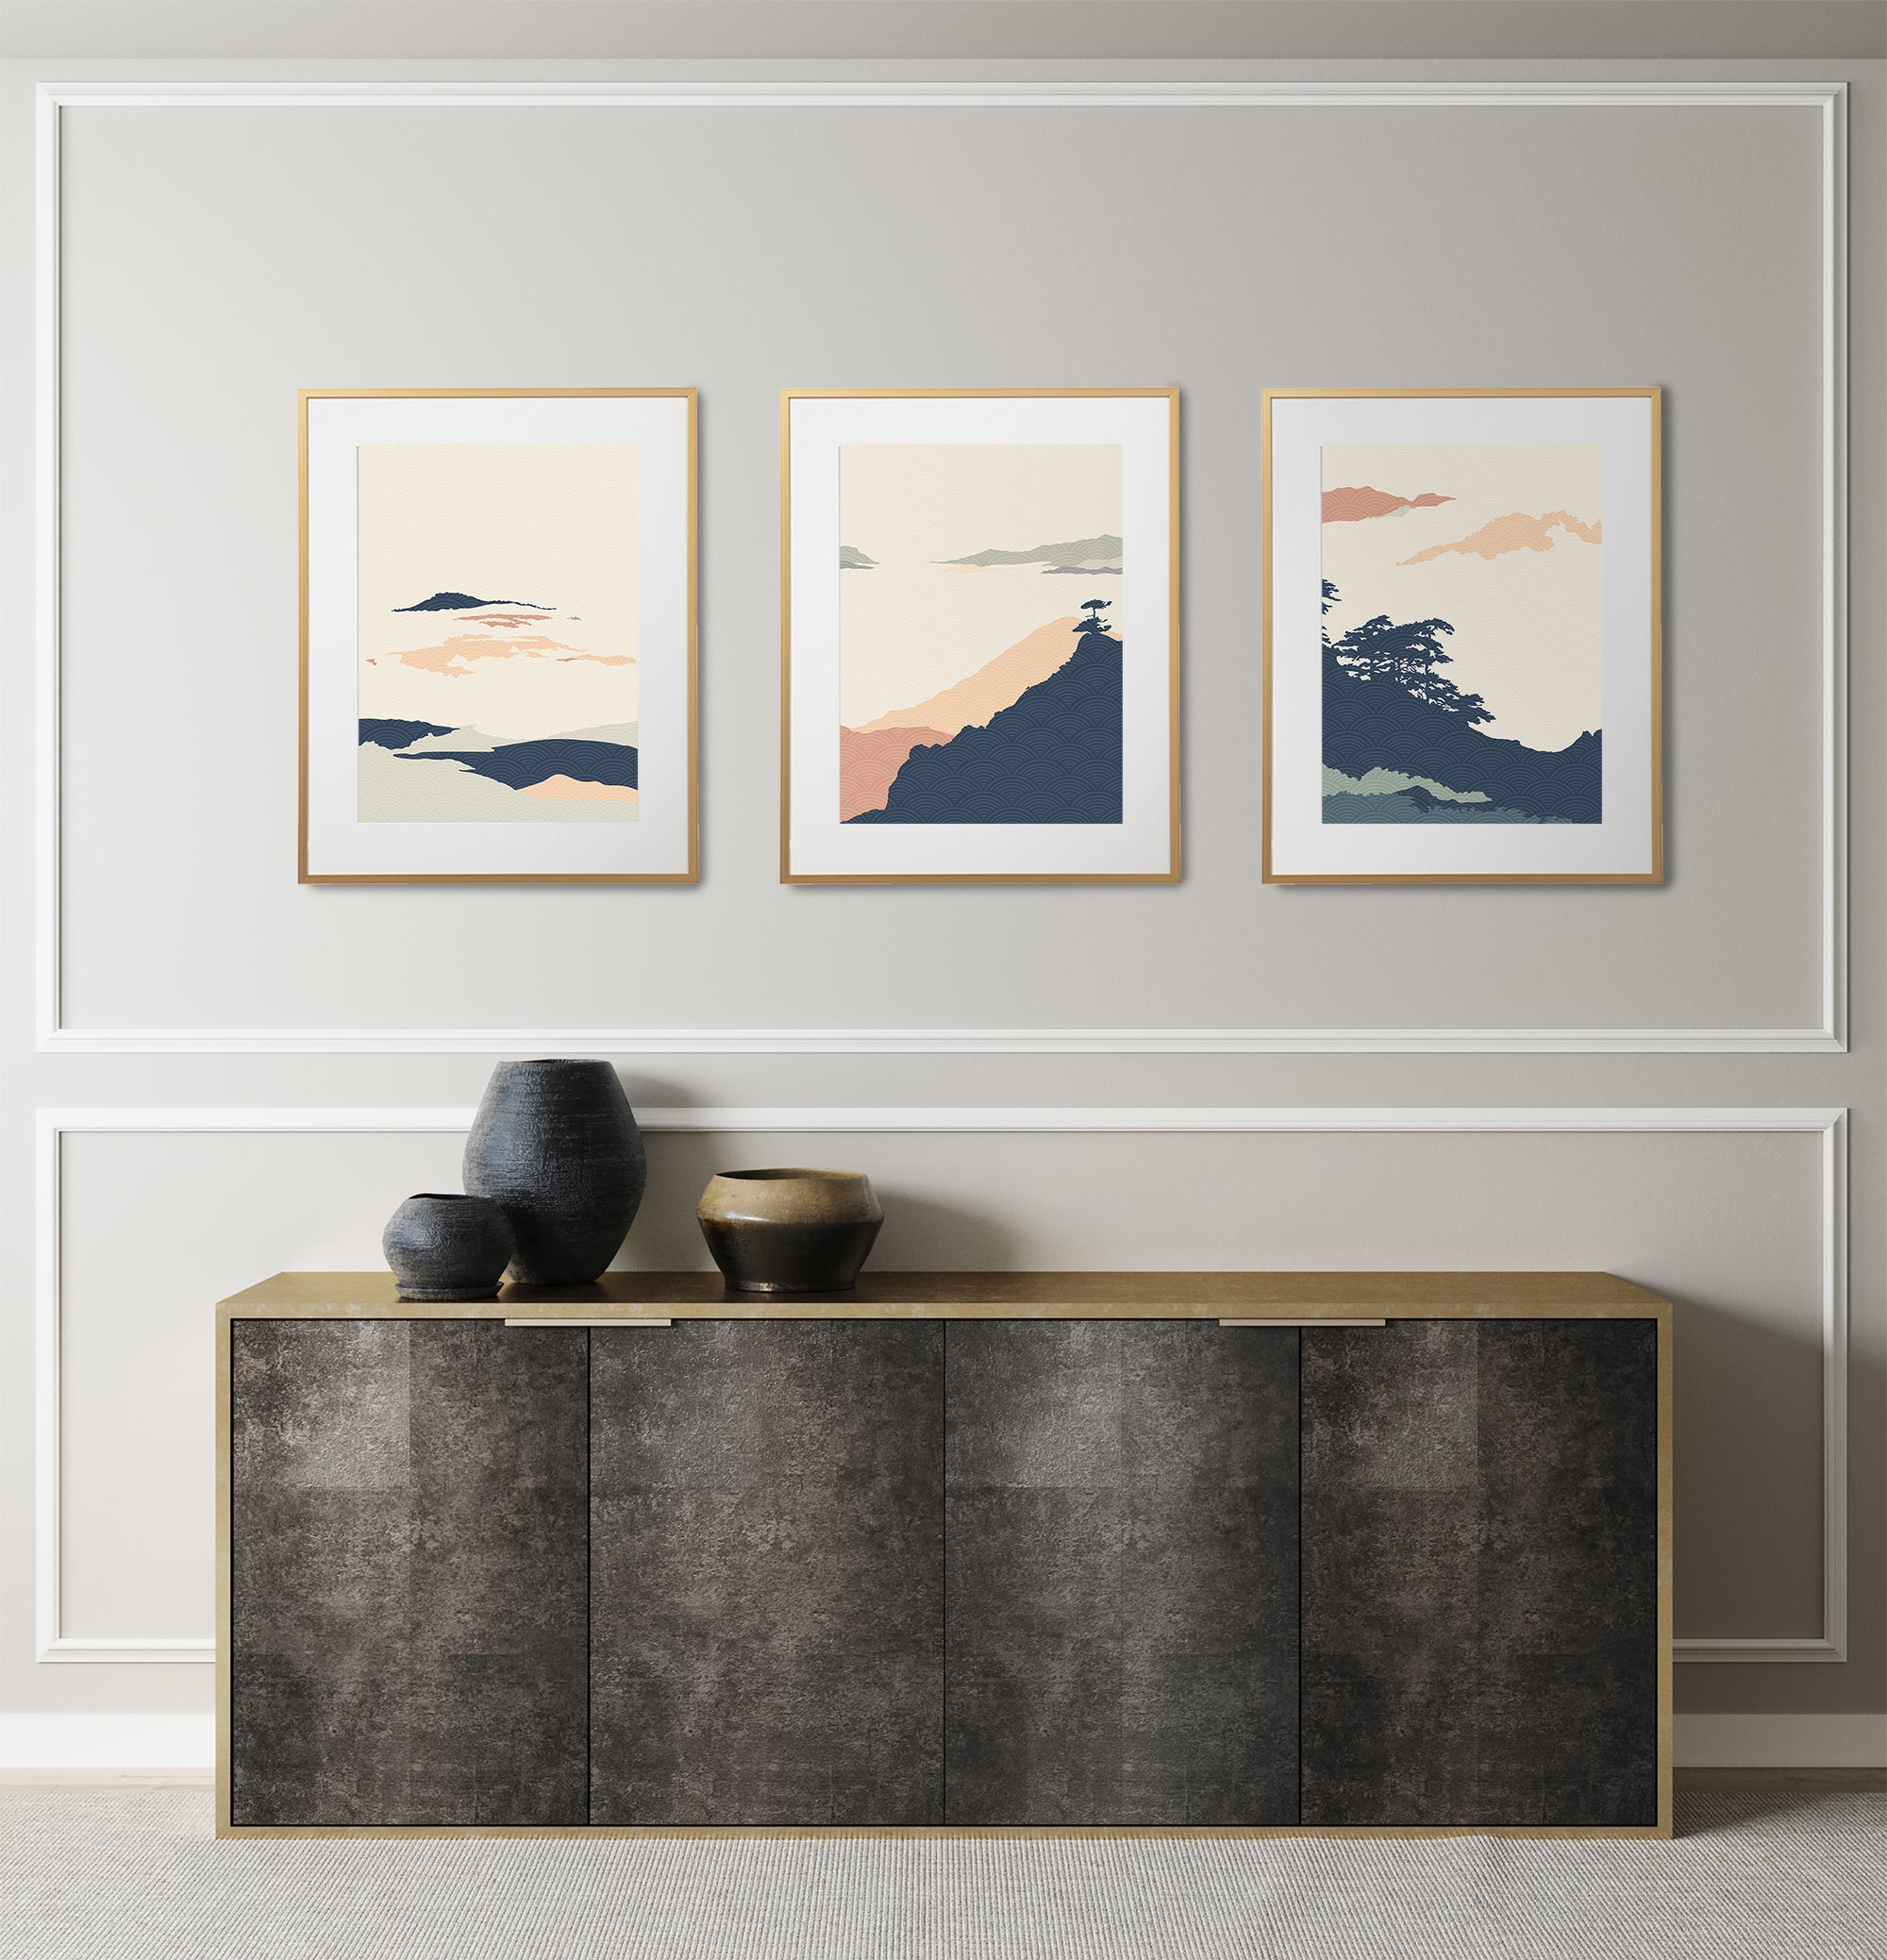 Pastel color Japanese art print, minimalist poster set of 3